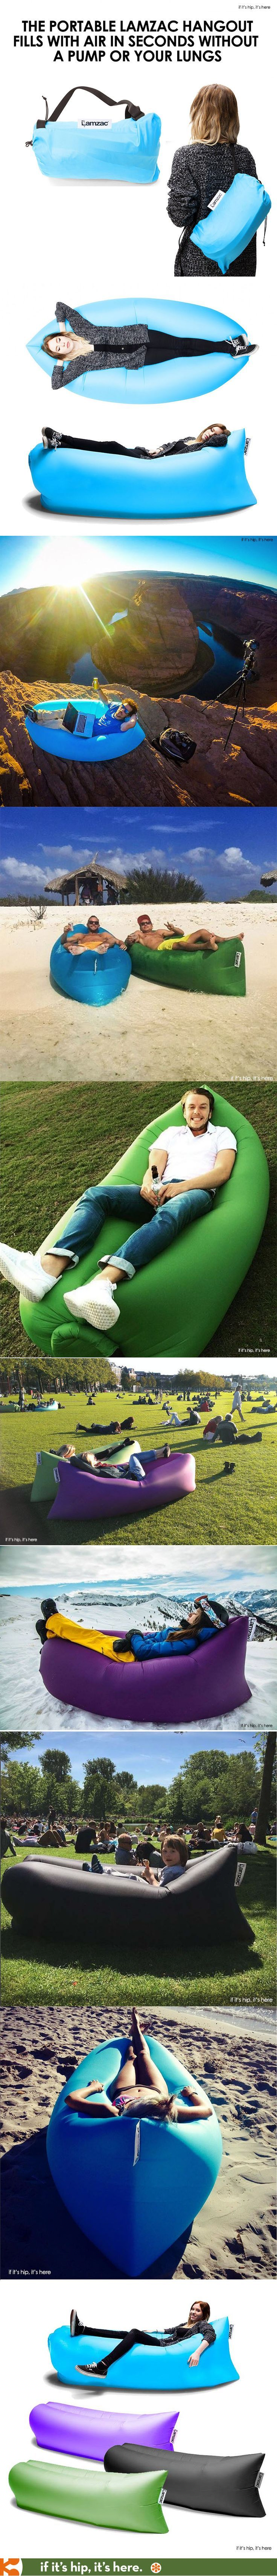 The portable Lamzac hangout, made of ripstop nylon, inflates in seconds without a pump or your lungs. - if it's hip, it's here